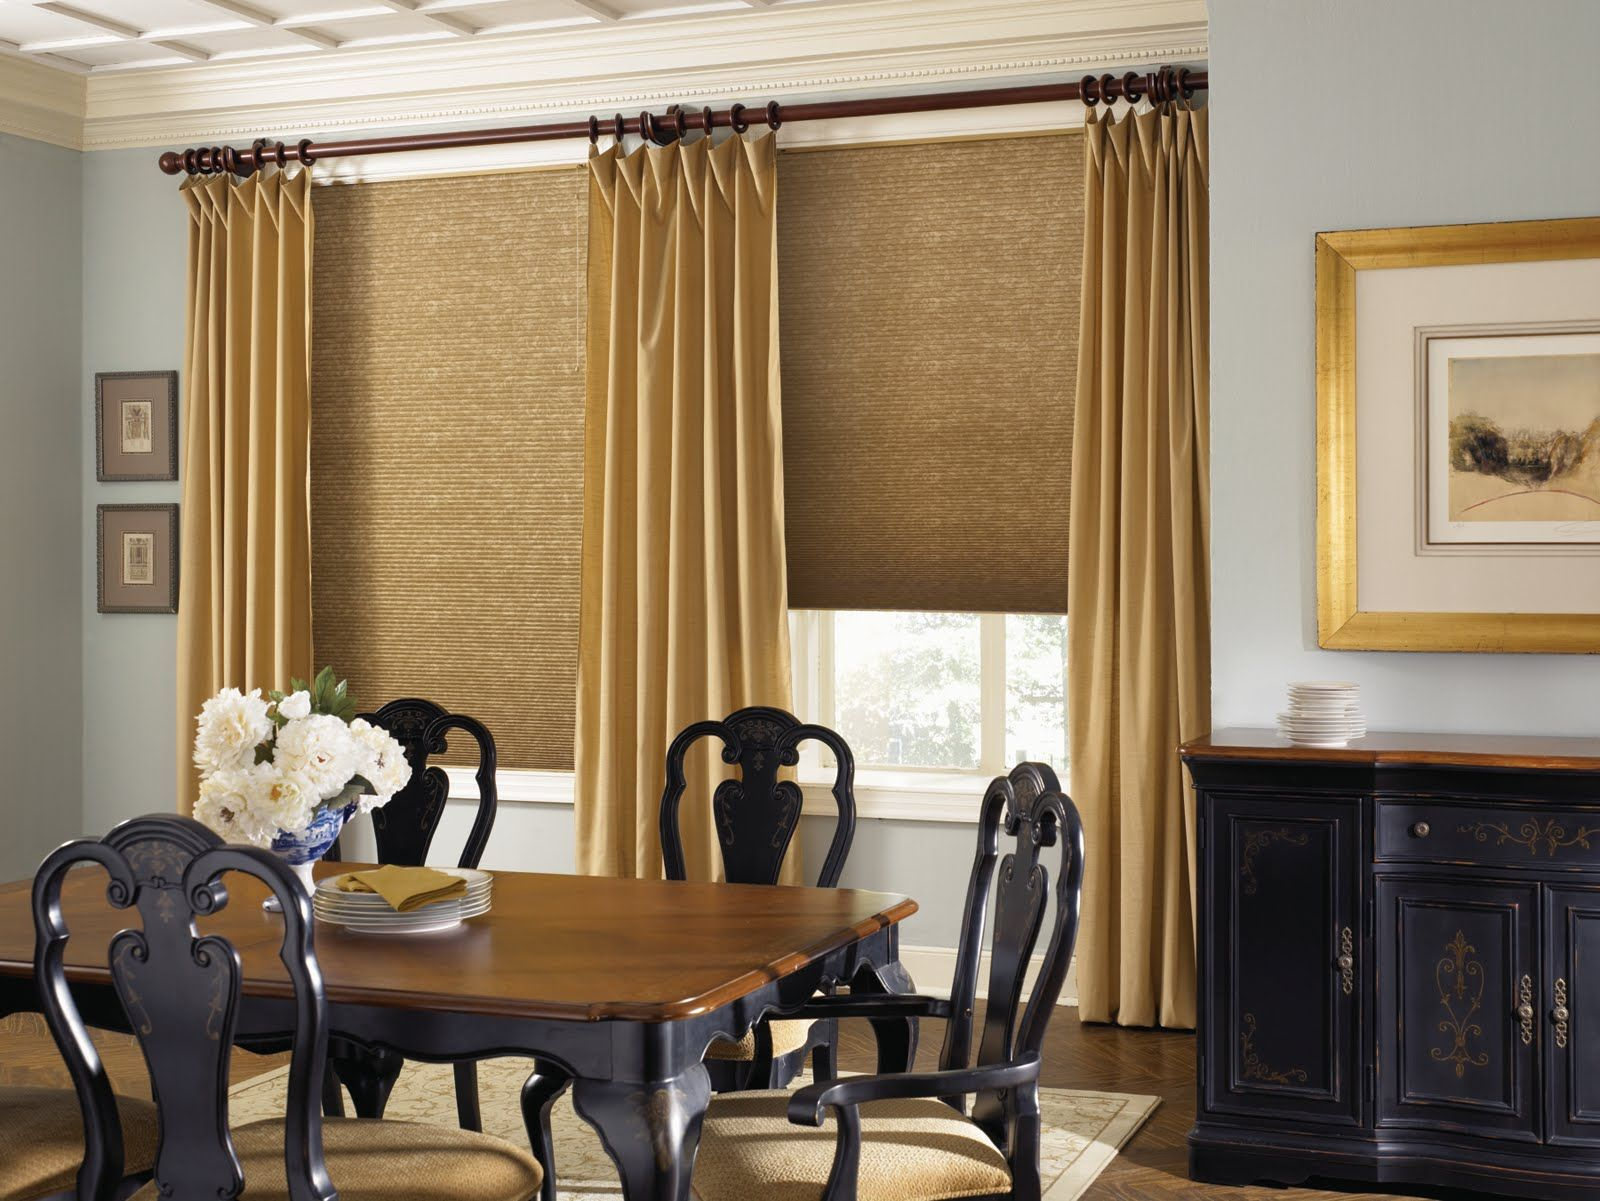 Northwest Window Coverings Gold Color Scheme In The Dining Living Room Treatment Ideas Pictures Blinds CurtainsWindow